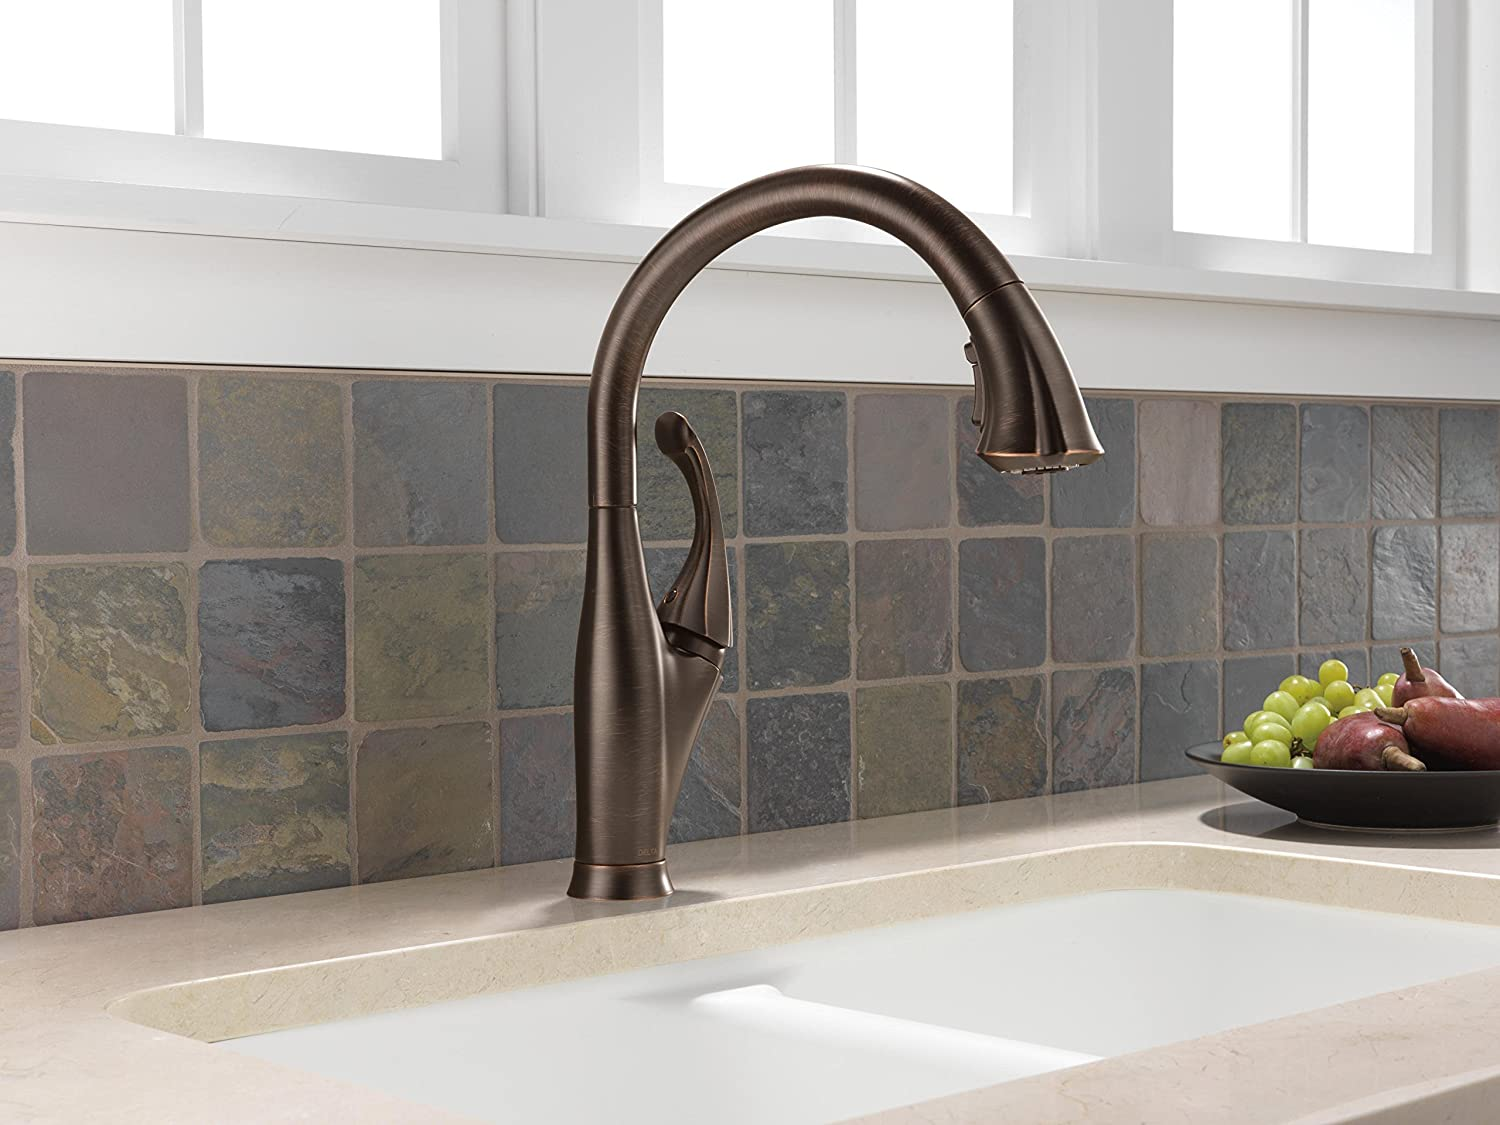 Delta 9192 RB DST Addison Single Handle Pull Down Kitchen Faucet, Venetian  Bronze   Touch On Kitchen Sink Faucets   Amazon.com